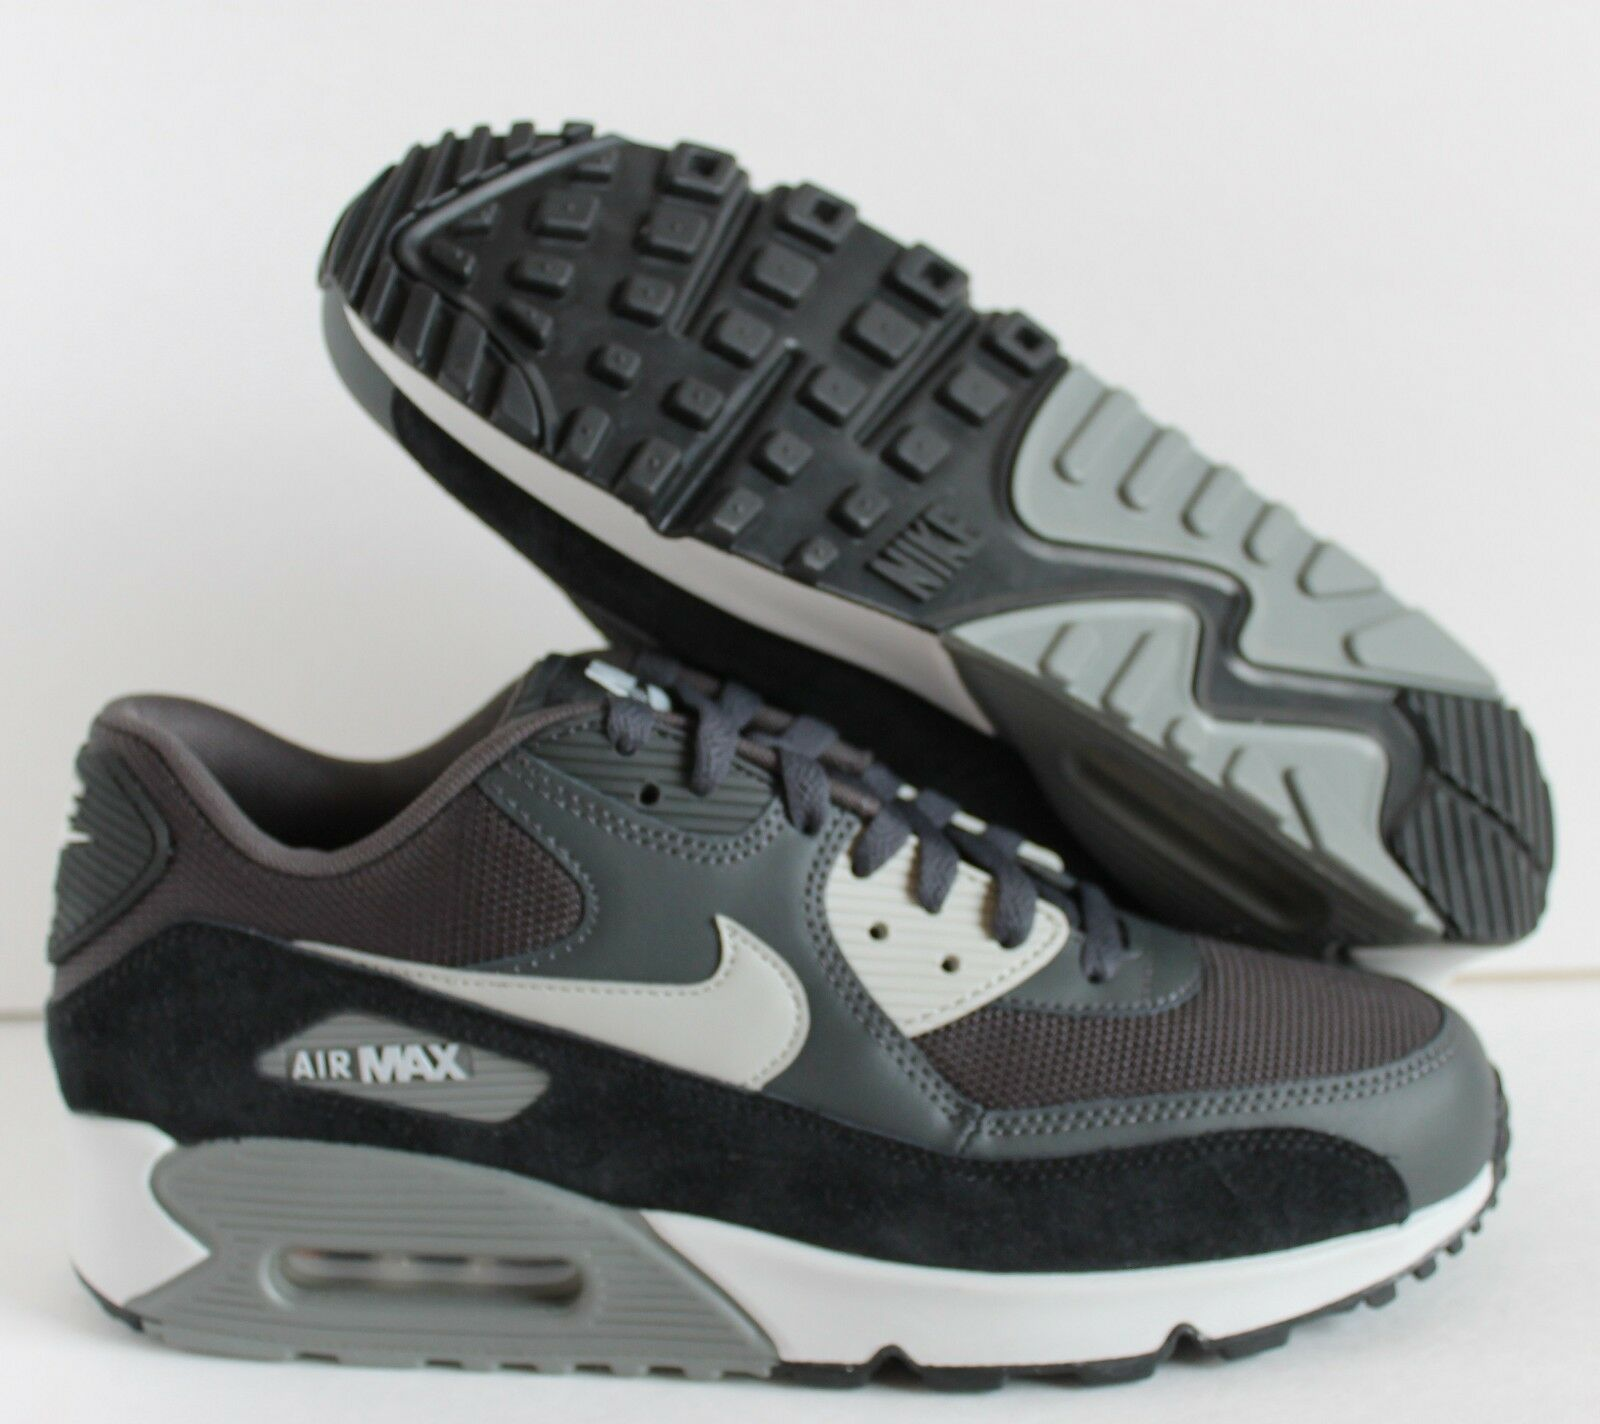 Nike Air Max 90 ESSENTIAL Anthracite-Granite- Noir SZ 13